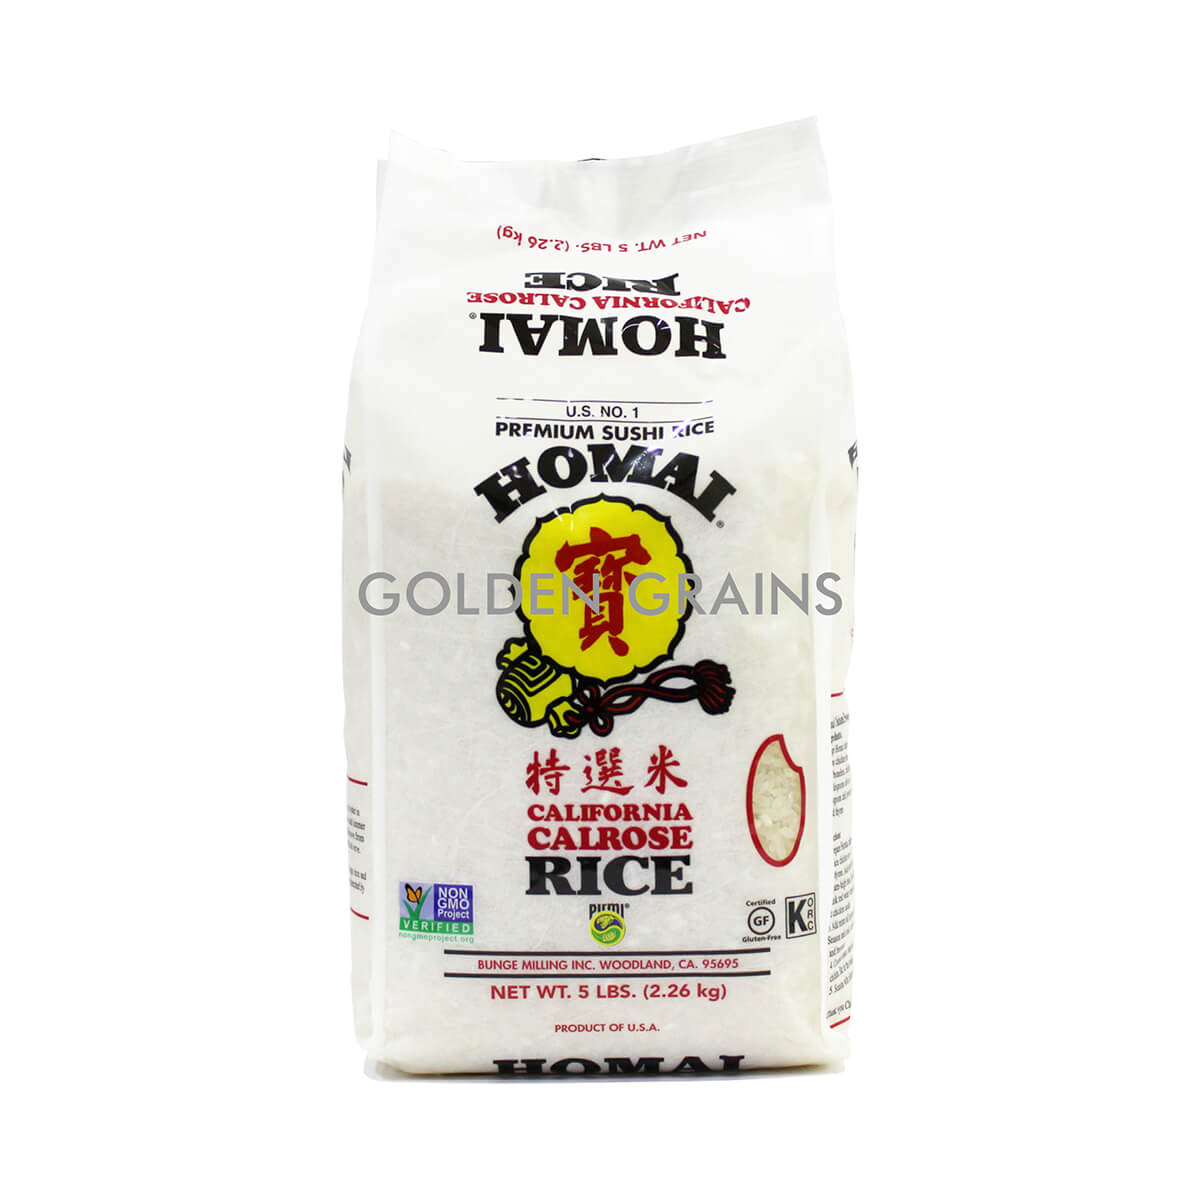 Golden Grains Homai - Calrose Rice 2.26KG - Front.jpg